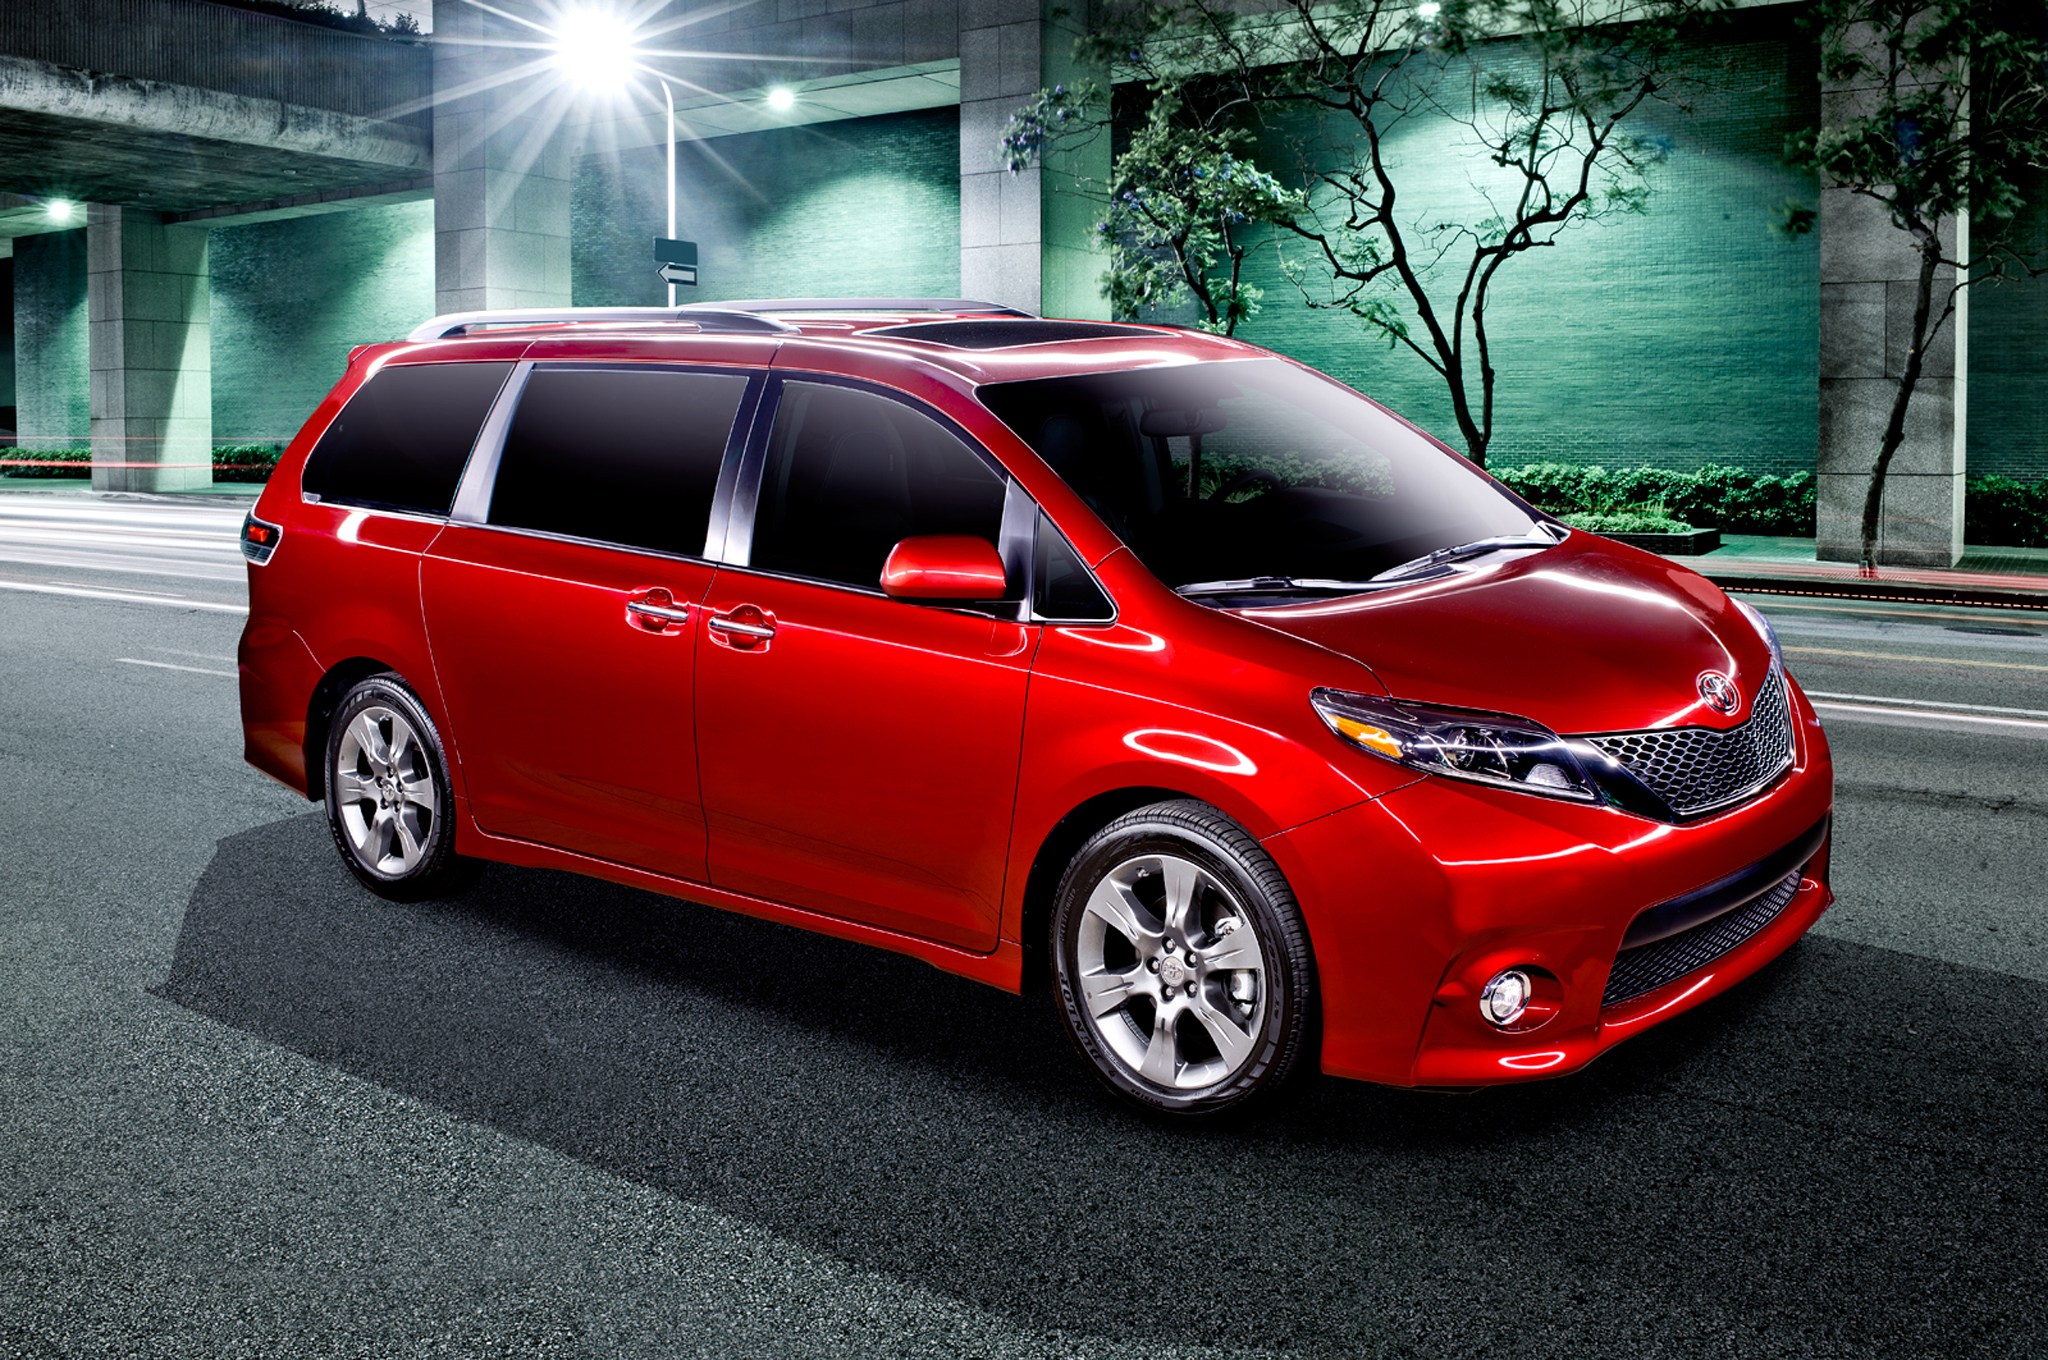 2015 Toyota Sienna Starts At $29,485, Tops Out At $47,035